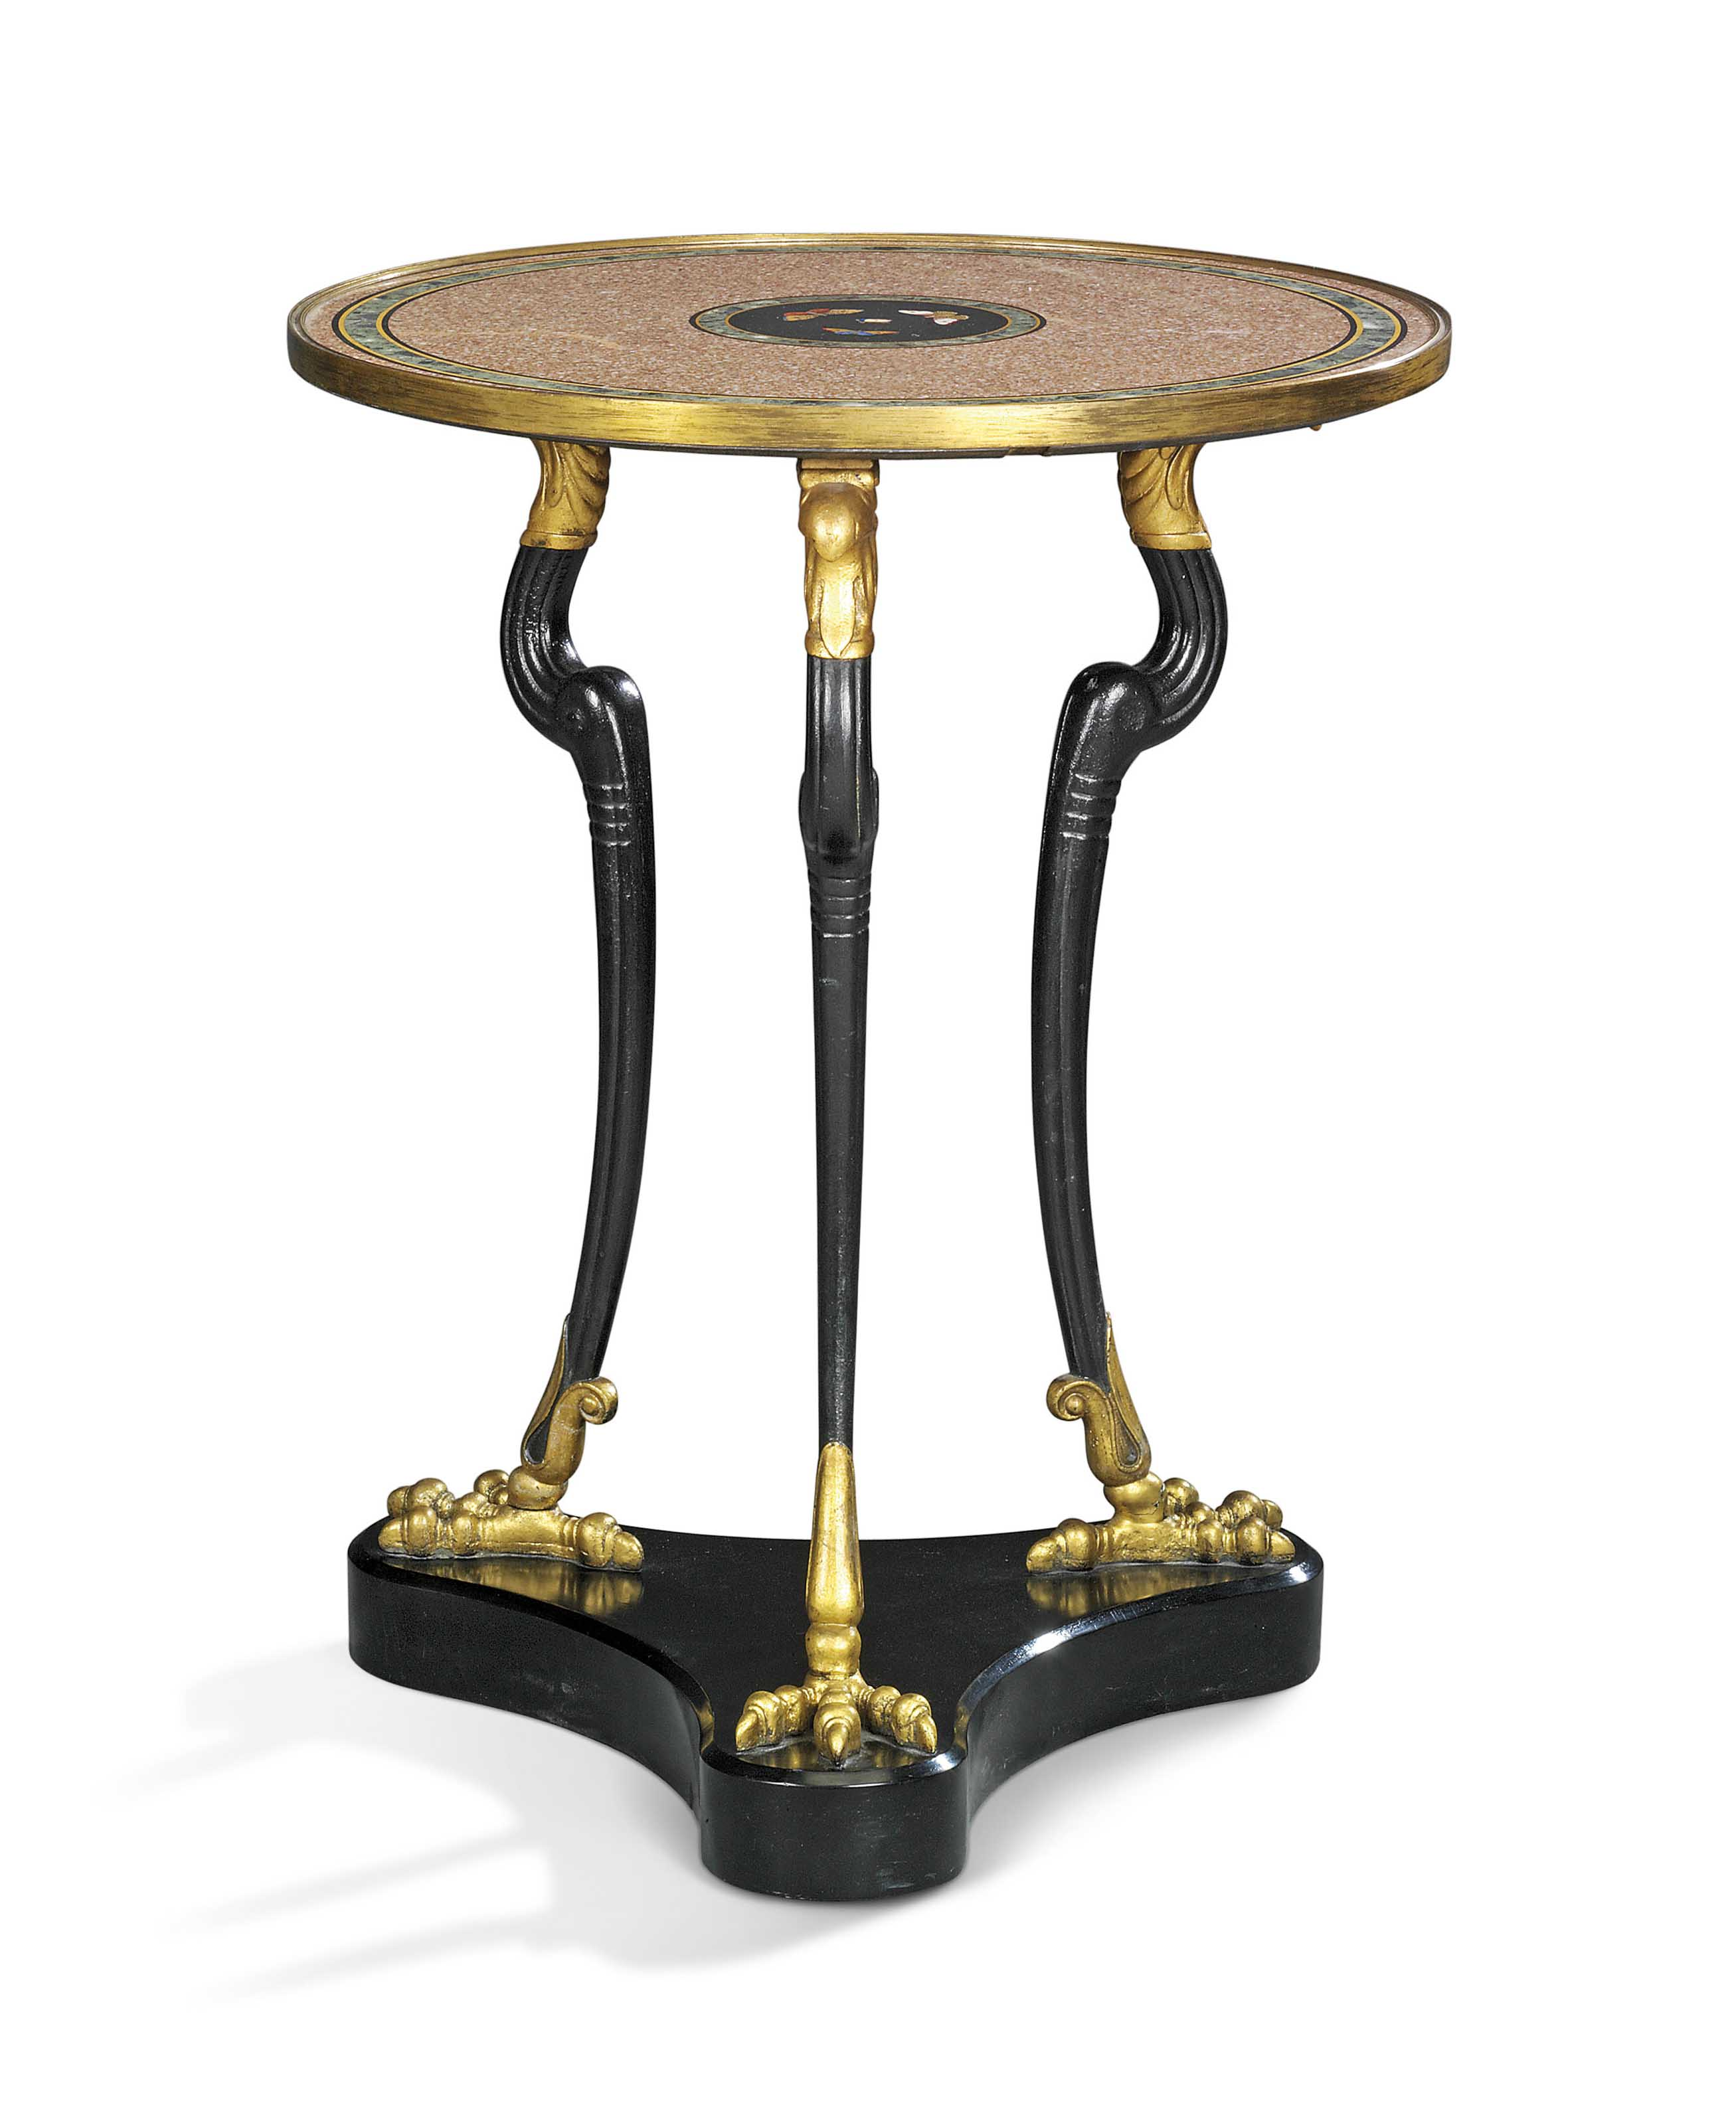 A REGENCY BRASS-MOUNTED MARBLE, BLACK-PAINTED AND GILT CAST-IRON GUERIDON